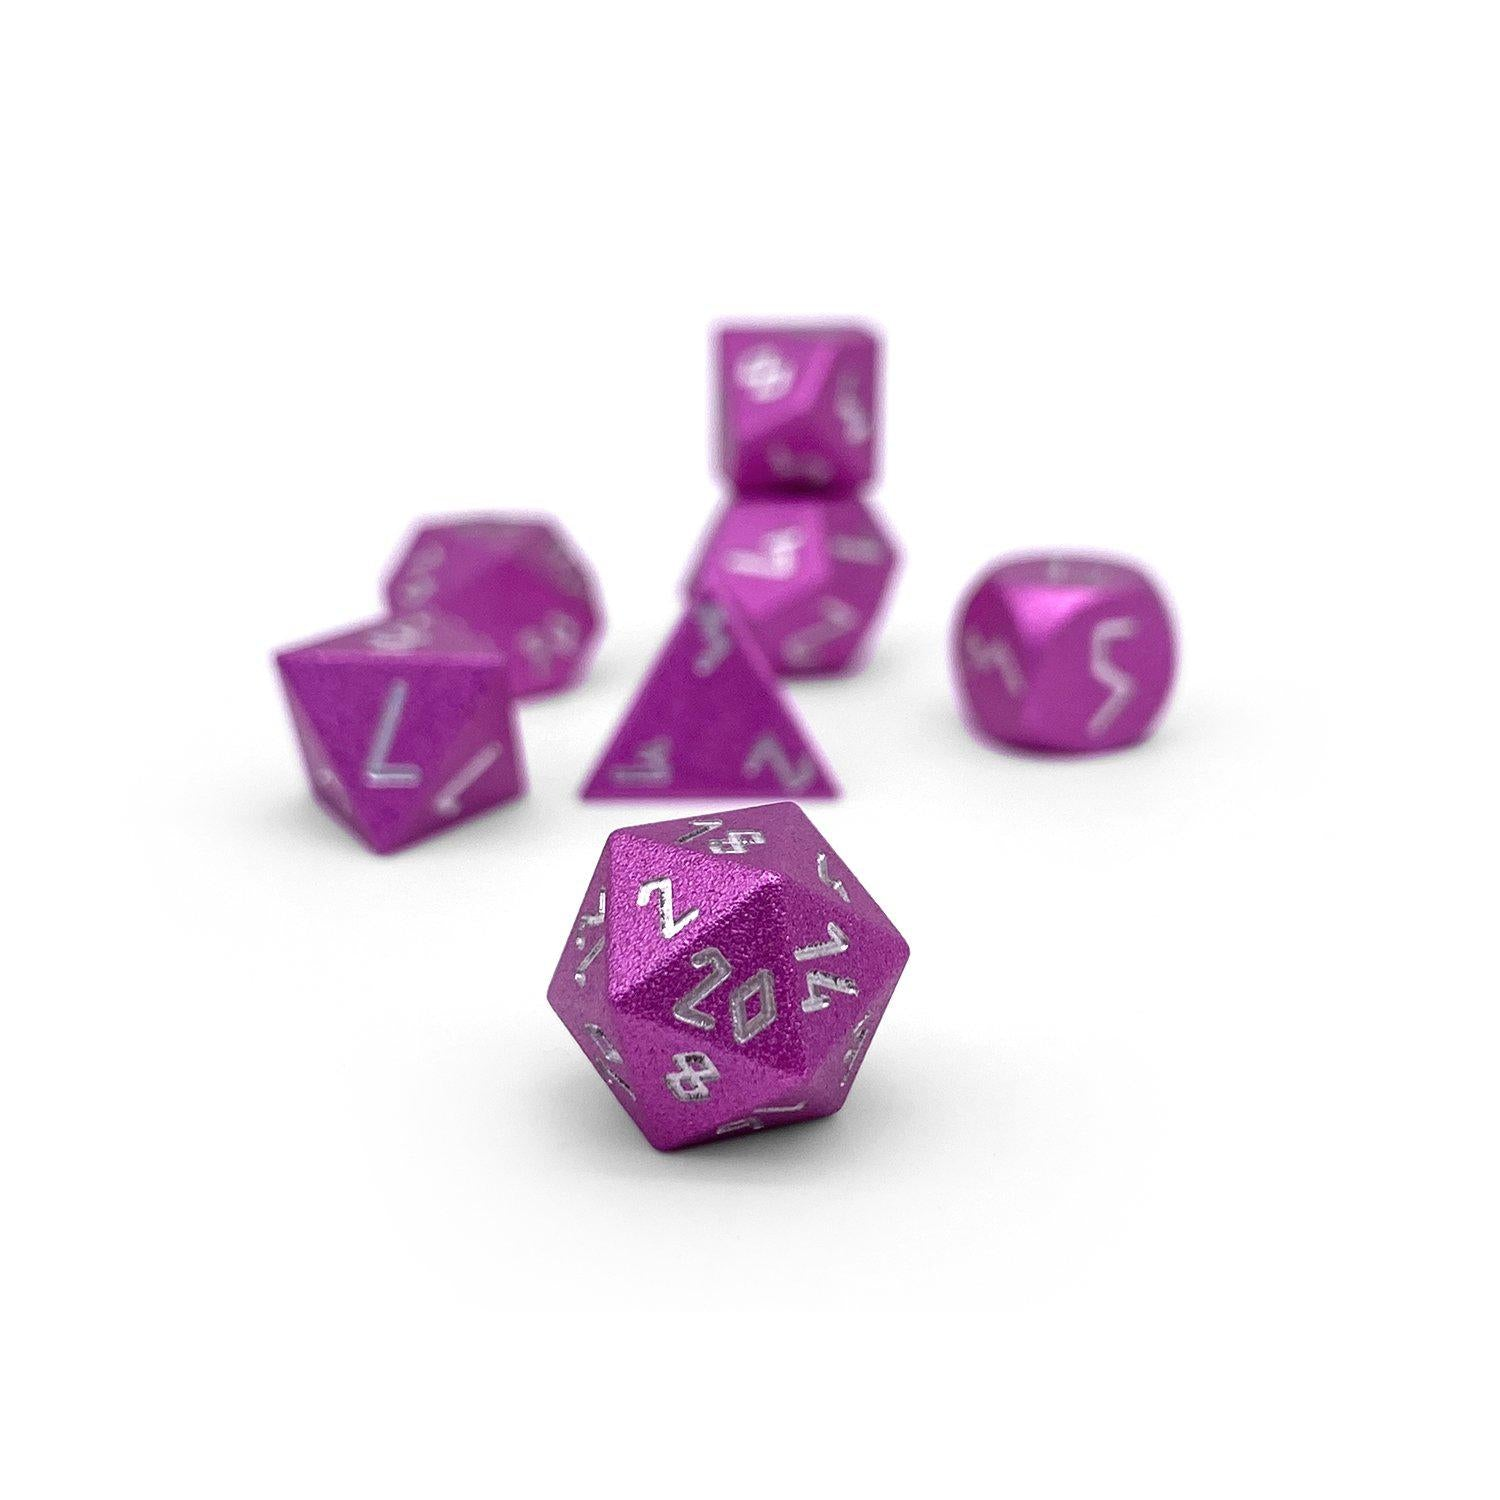 Potion Pink Pebble ™ Dice - 10mm 6063 Aircraft Grade Aluminum Mini